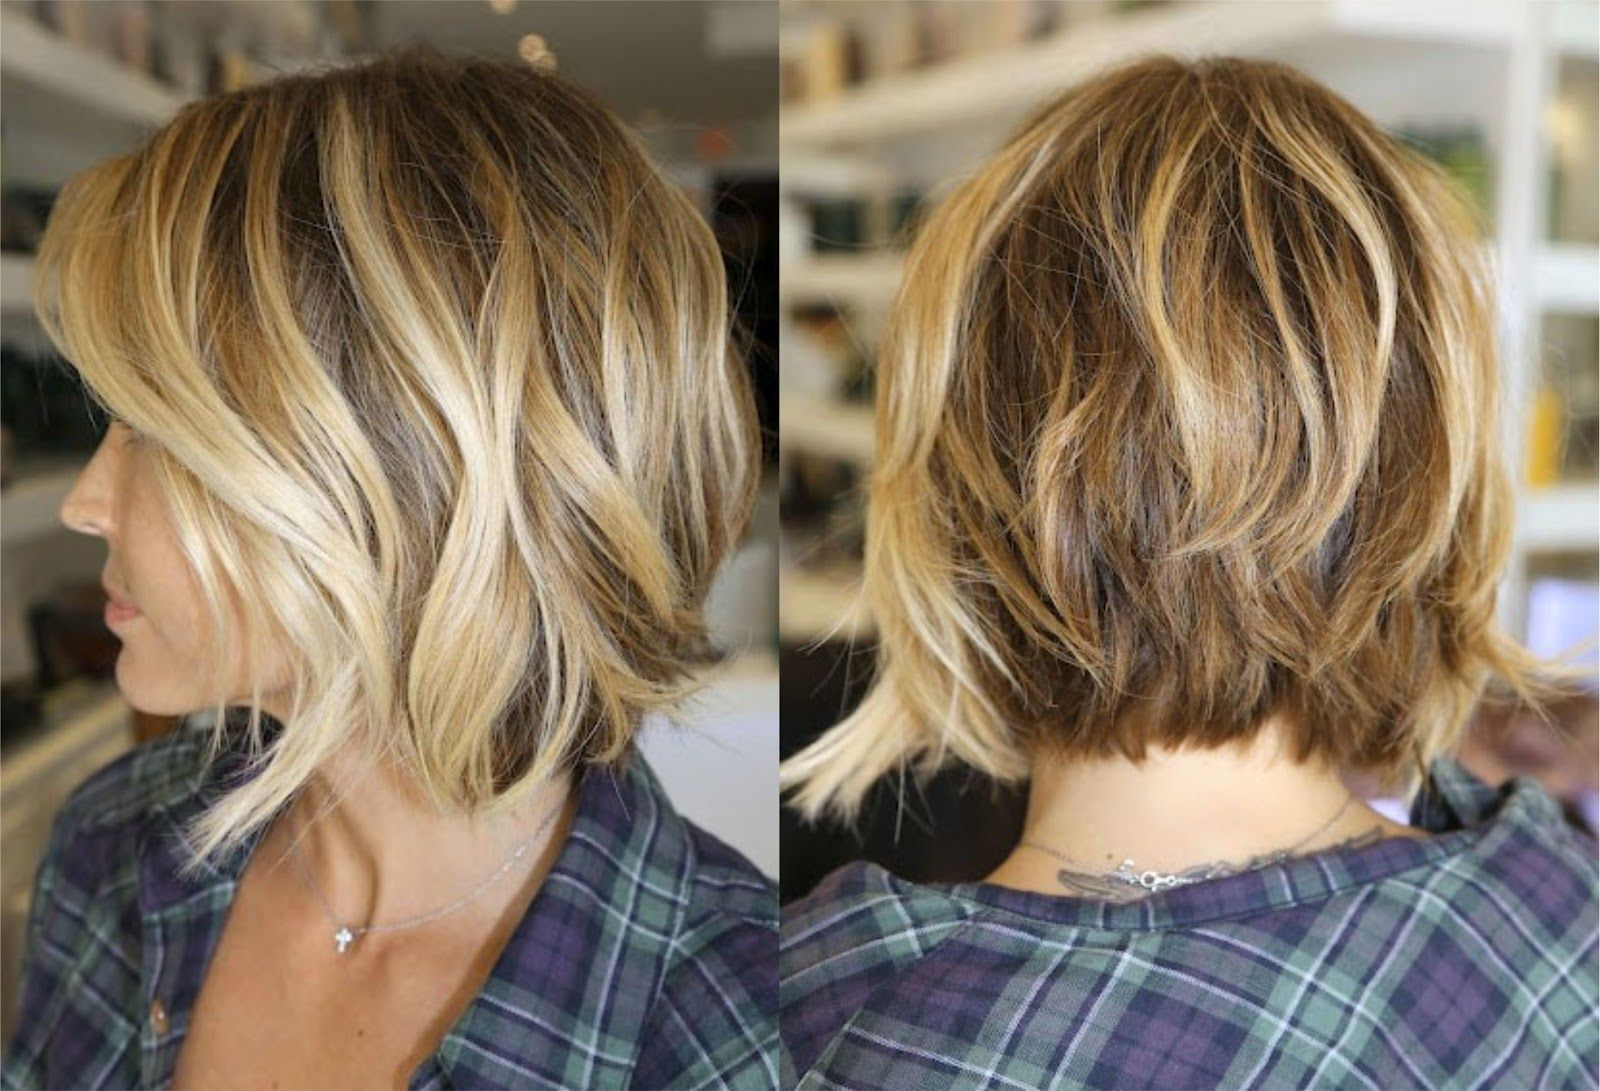 Pin by dawn hall on hair pinterest blondes hair style and haircuts